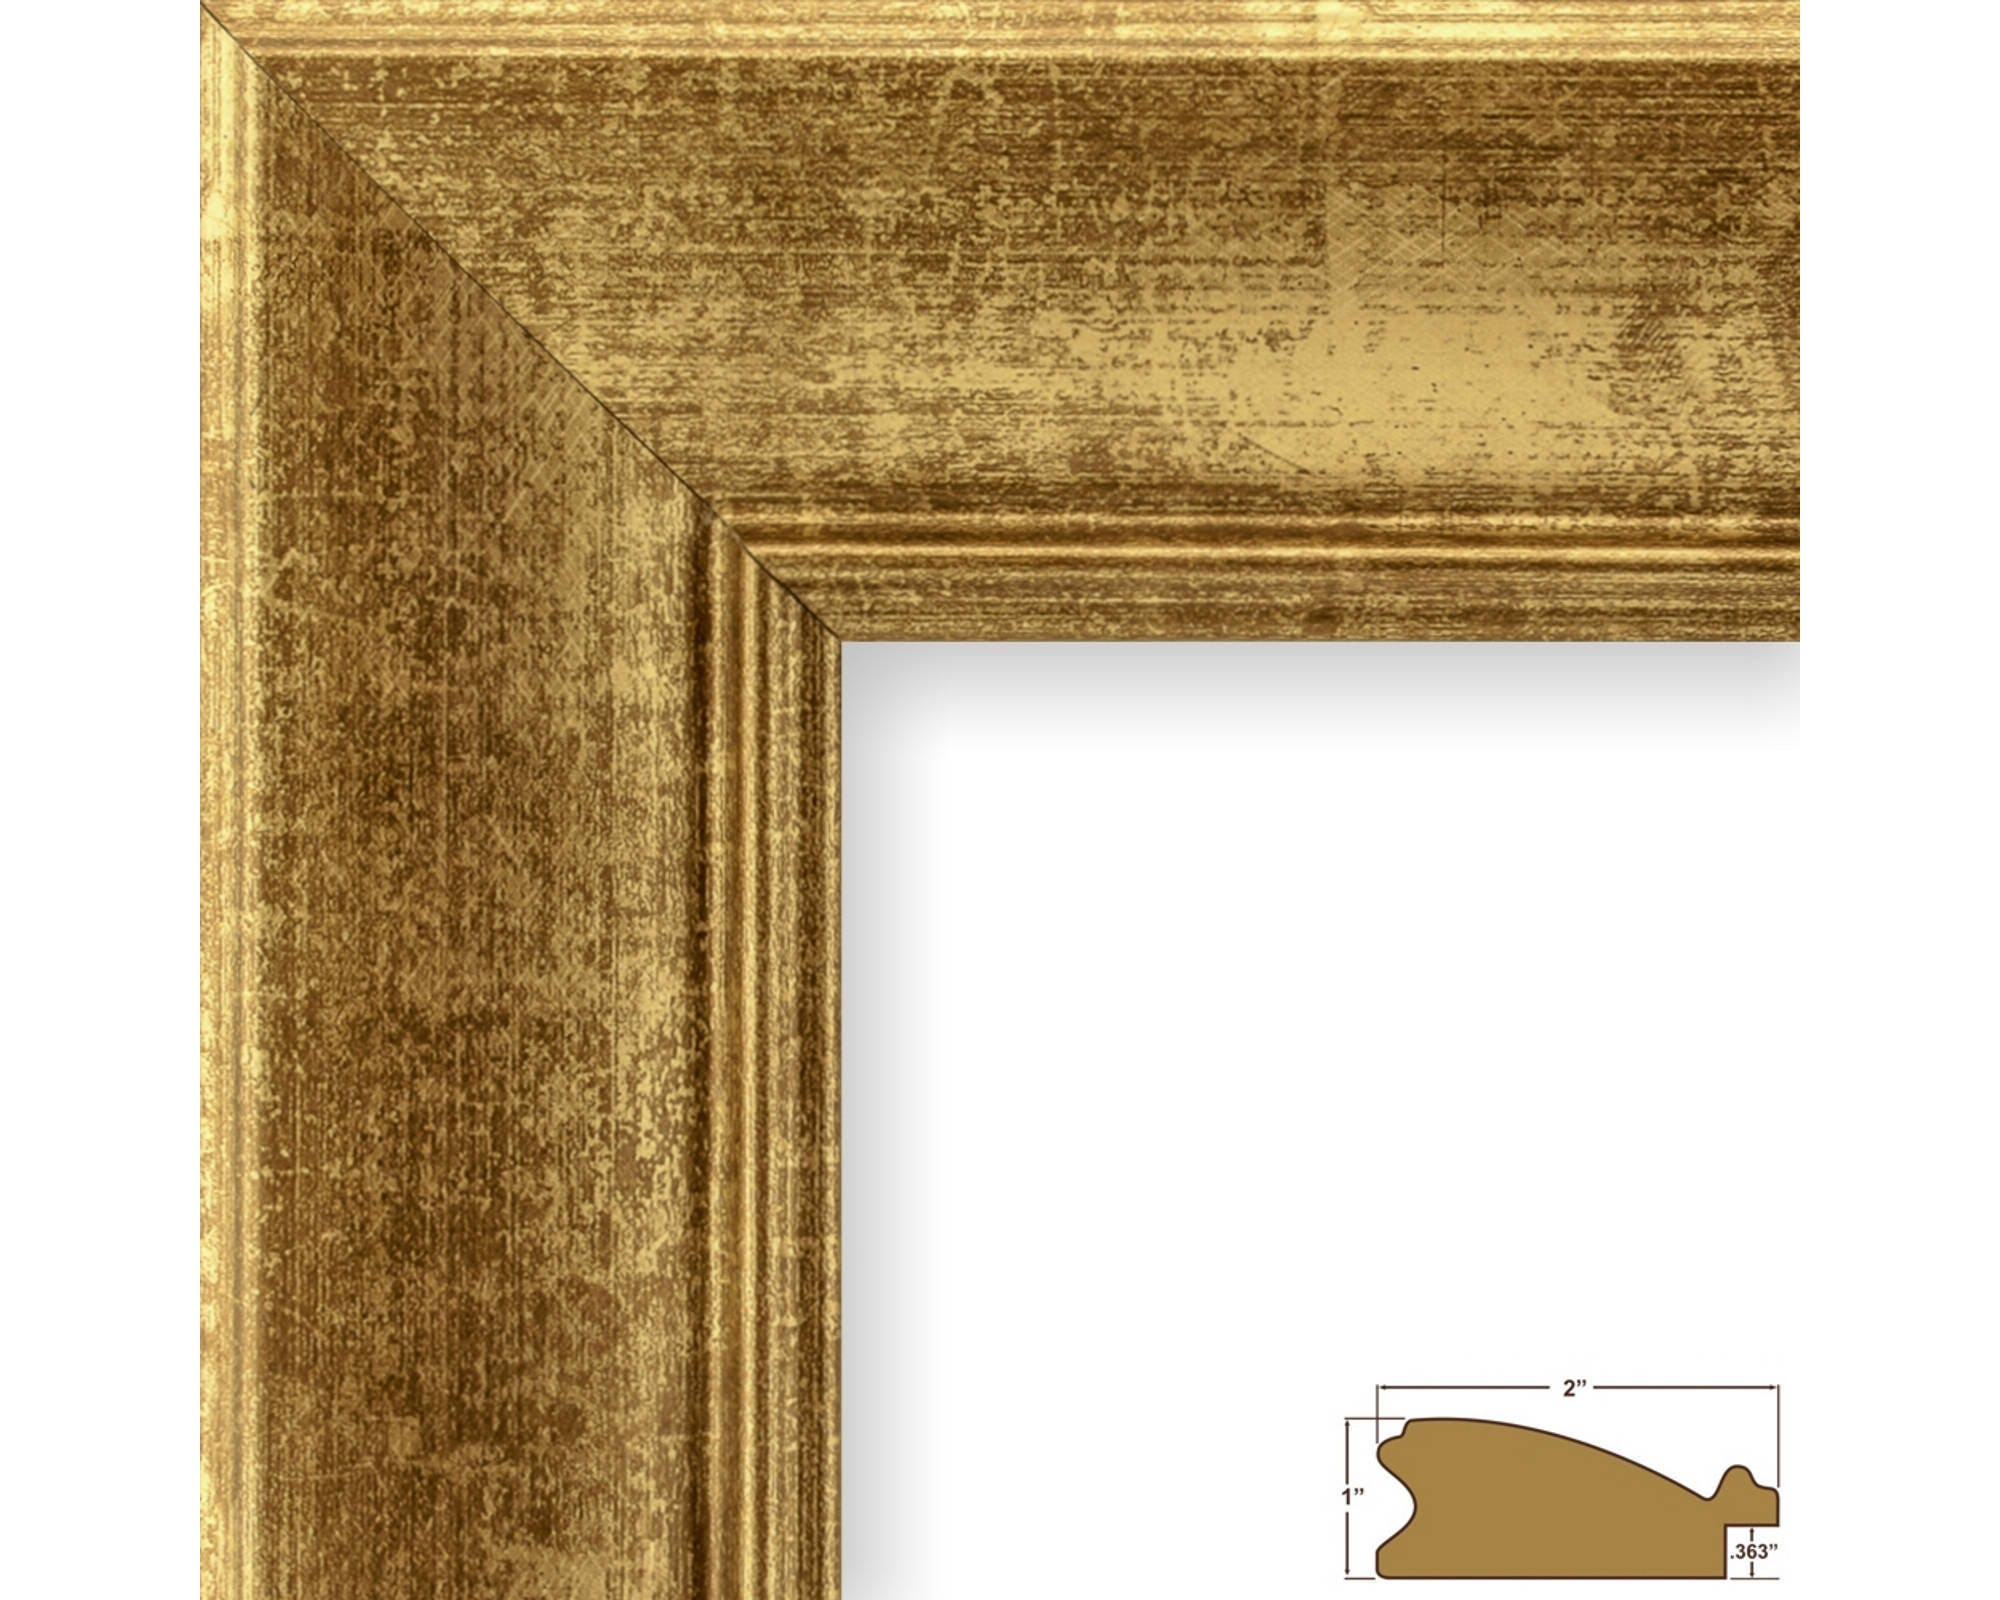 Craig frames 19x25 inch vintage gold picture frame 2 zoom jeuxipadfo Image collections